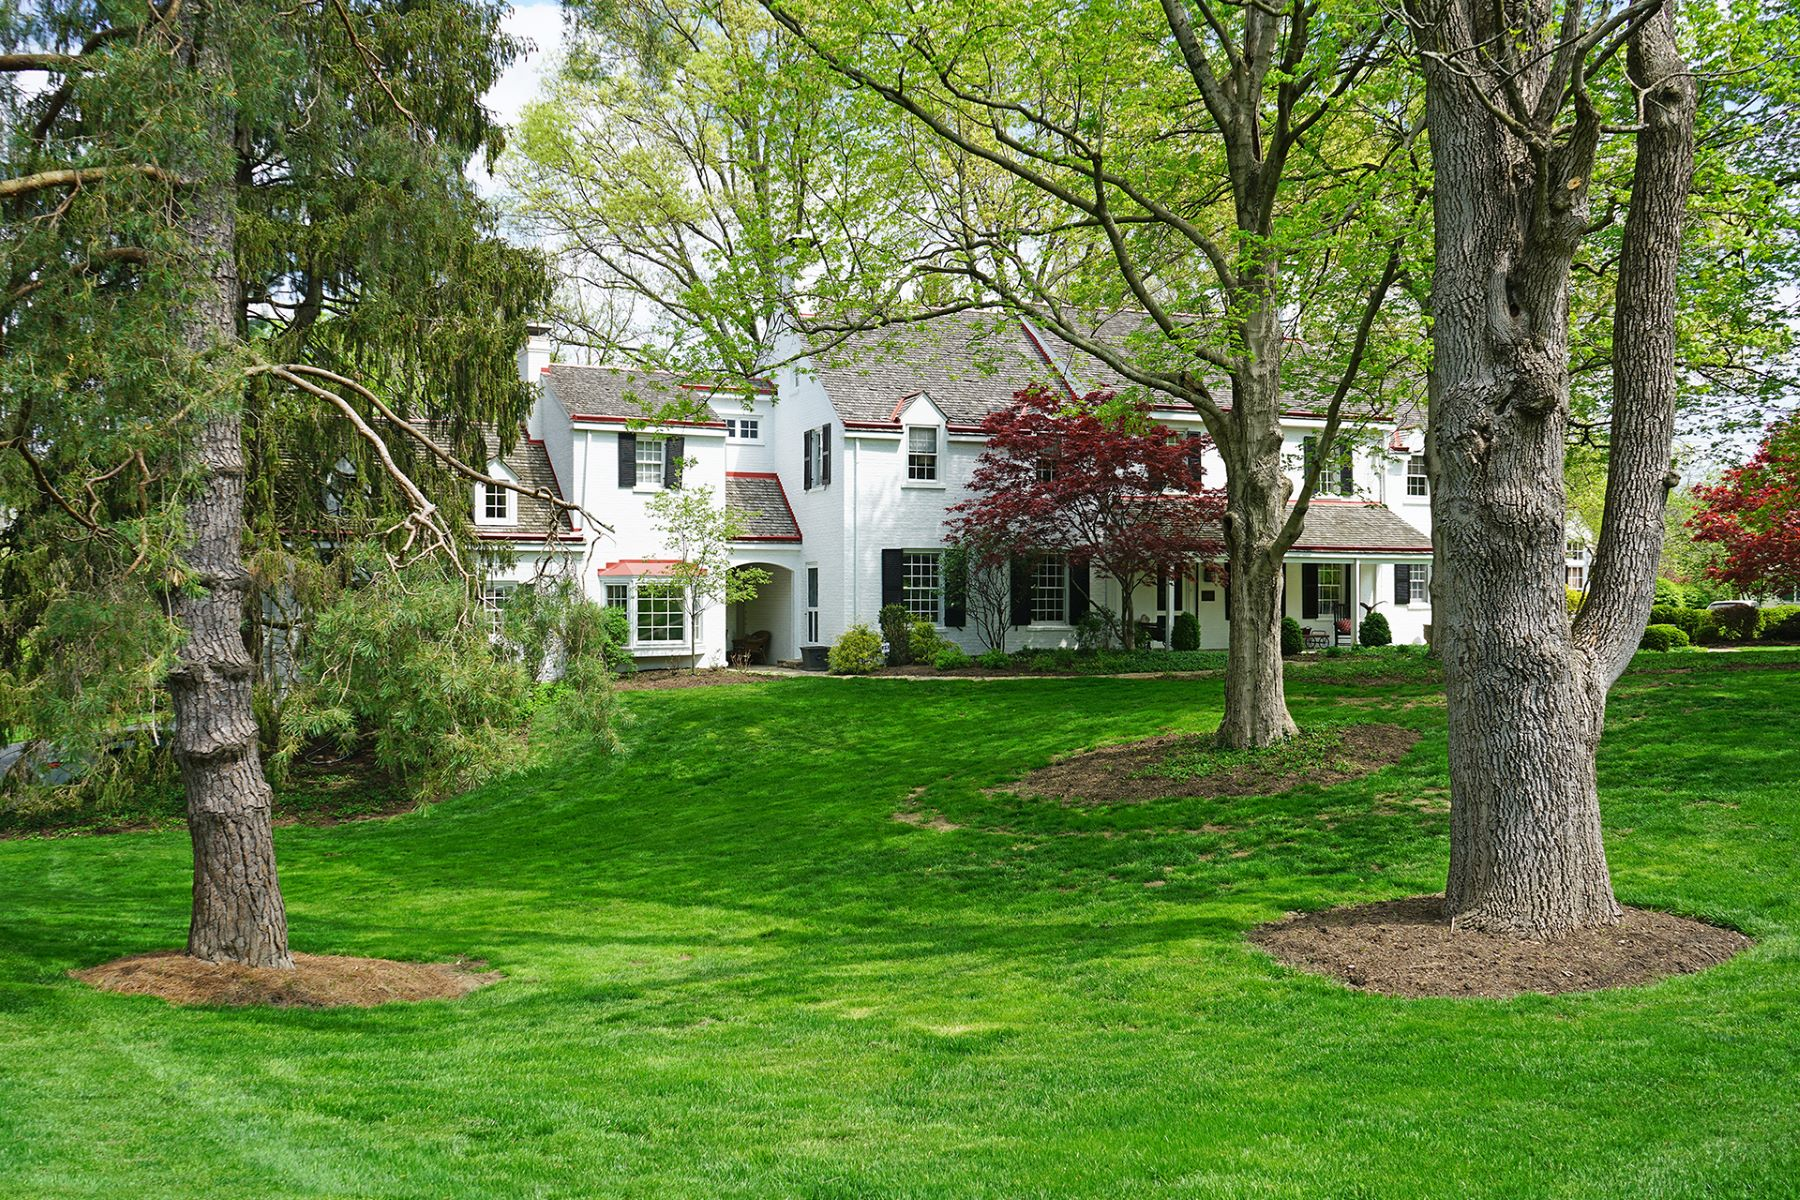 Single Family Homes for Sale at Extraordinary Estate Home with Extensive Updates 2930 Fair Acres Drive Cincinnati, Ohio 45213 United States